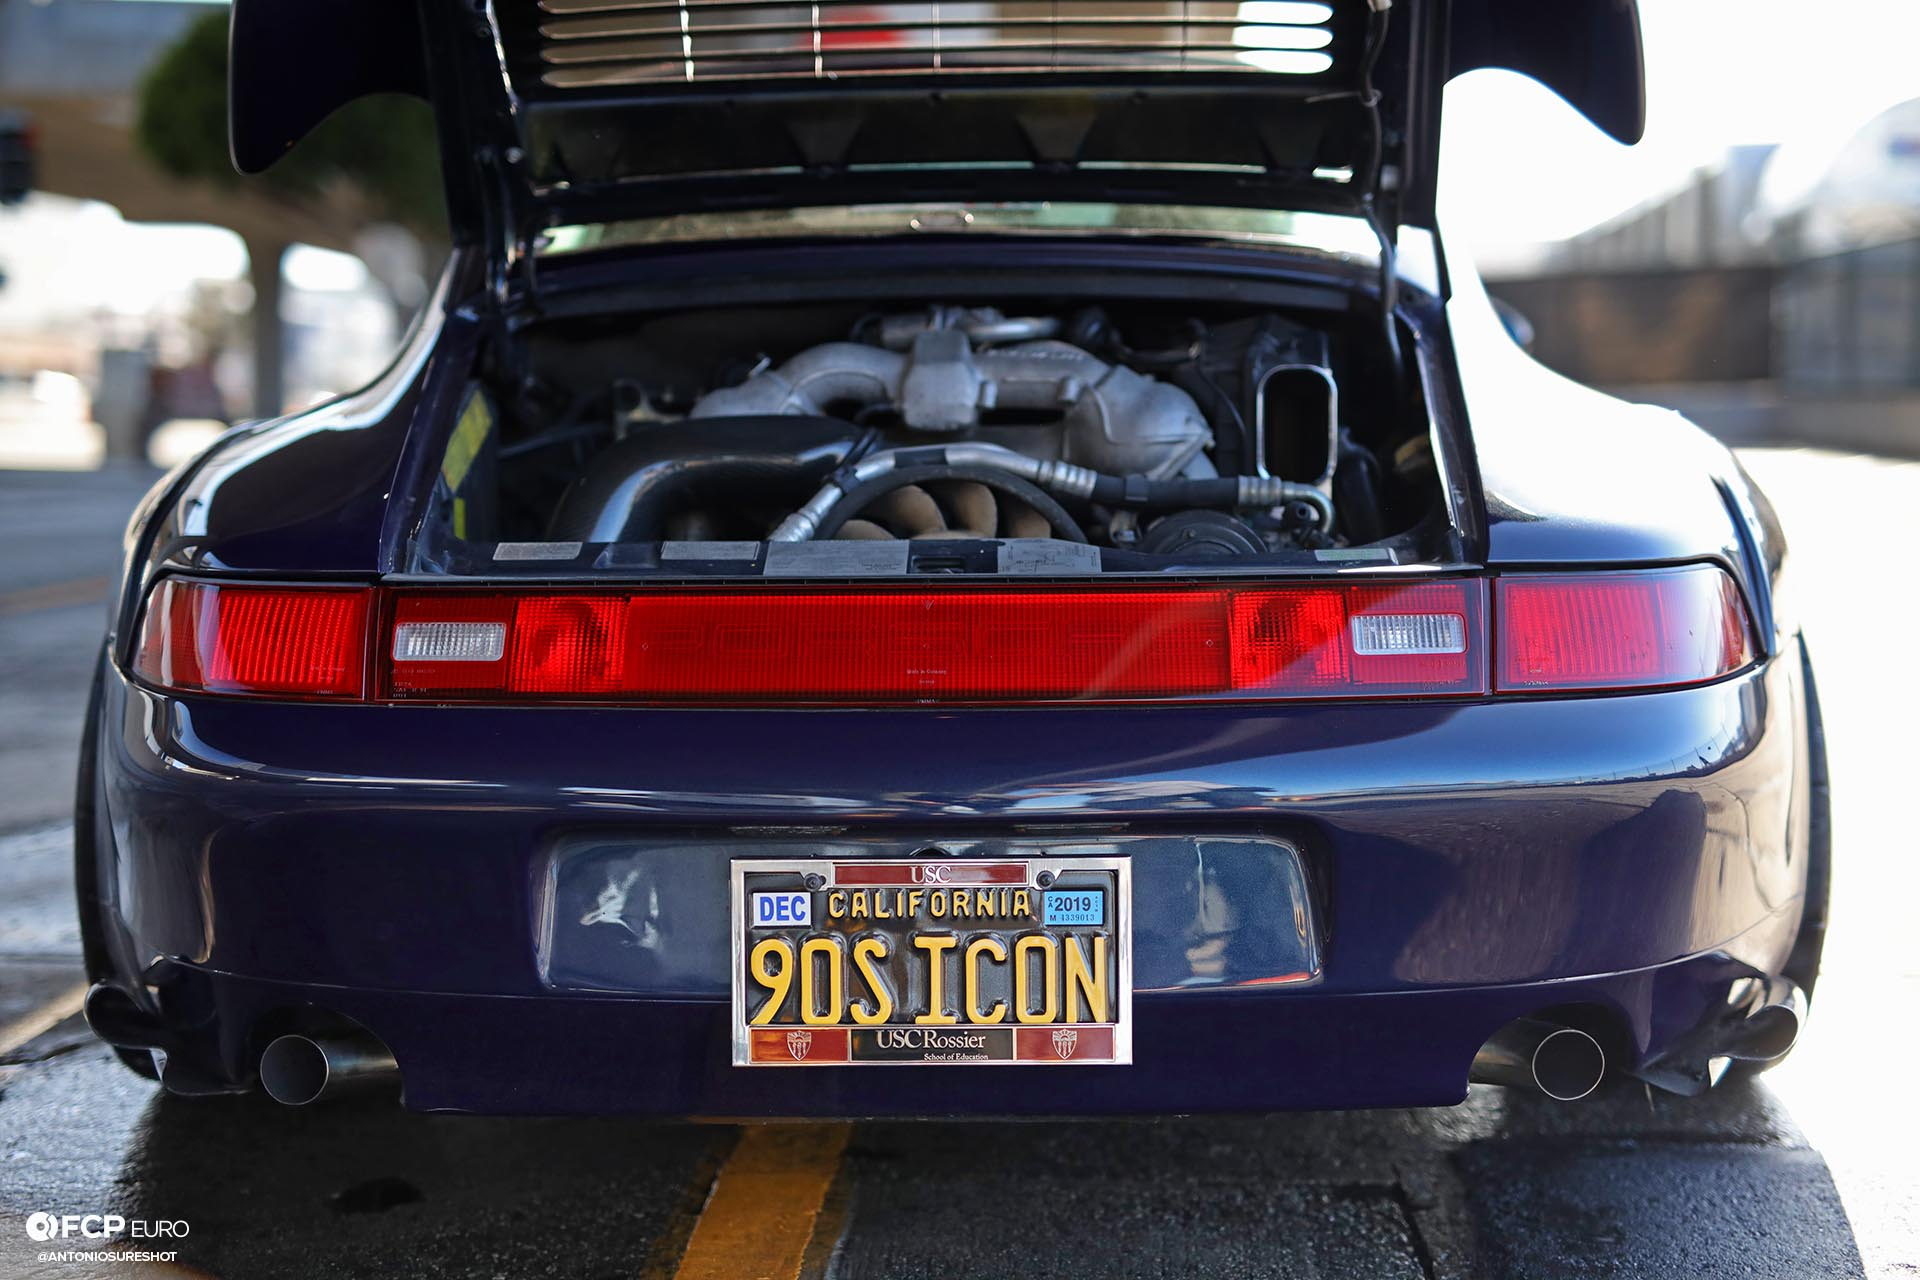 1996 Porsche 911 Carrera 993 RWB rear exhaust